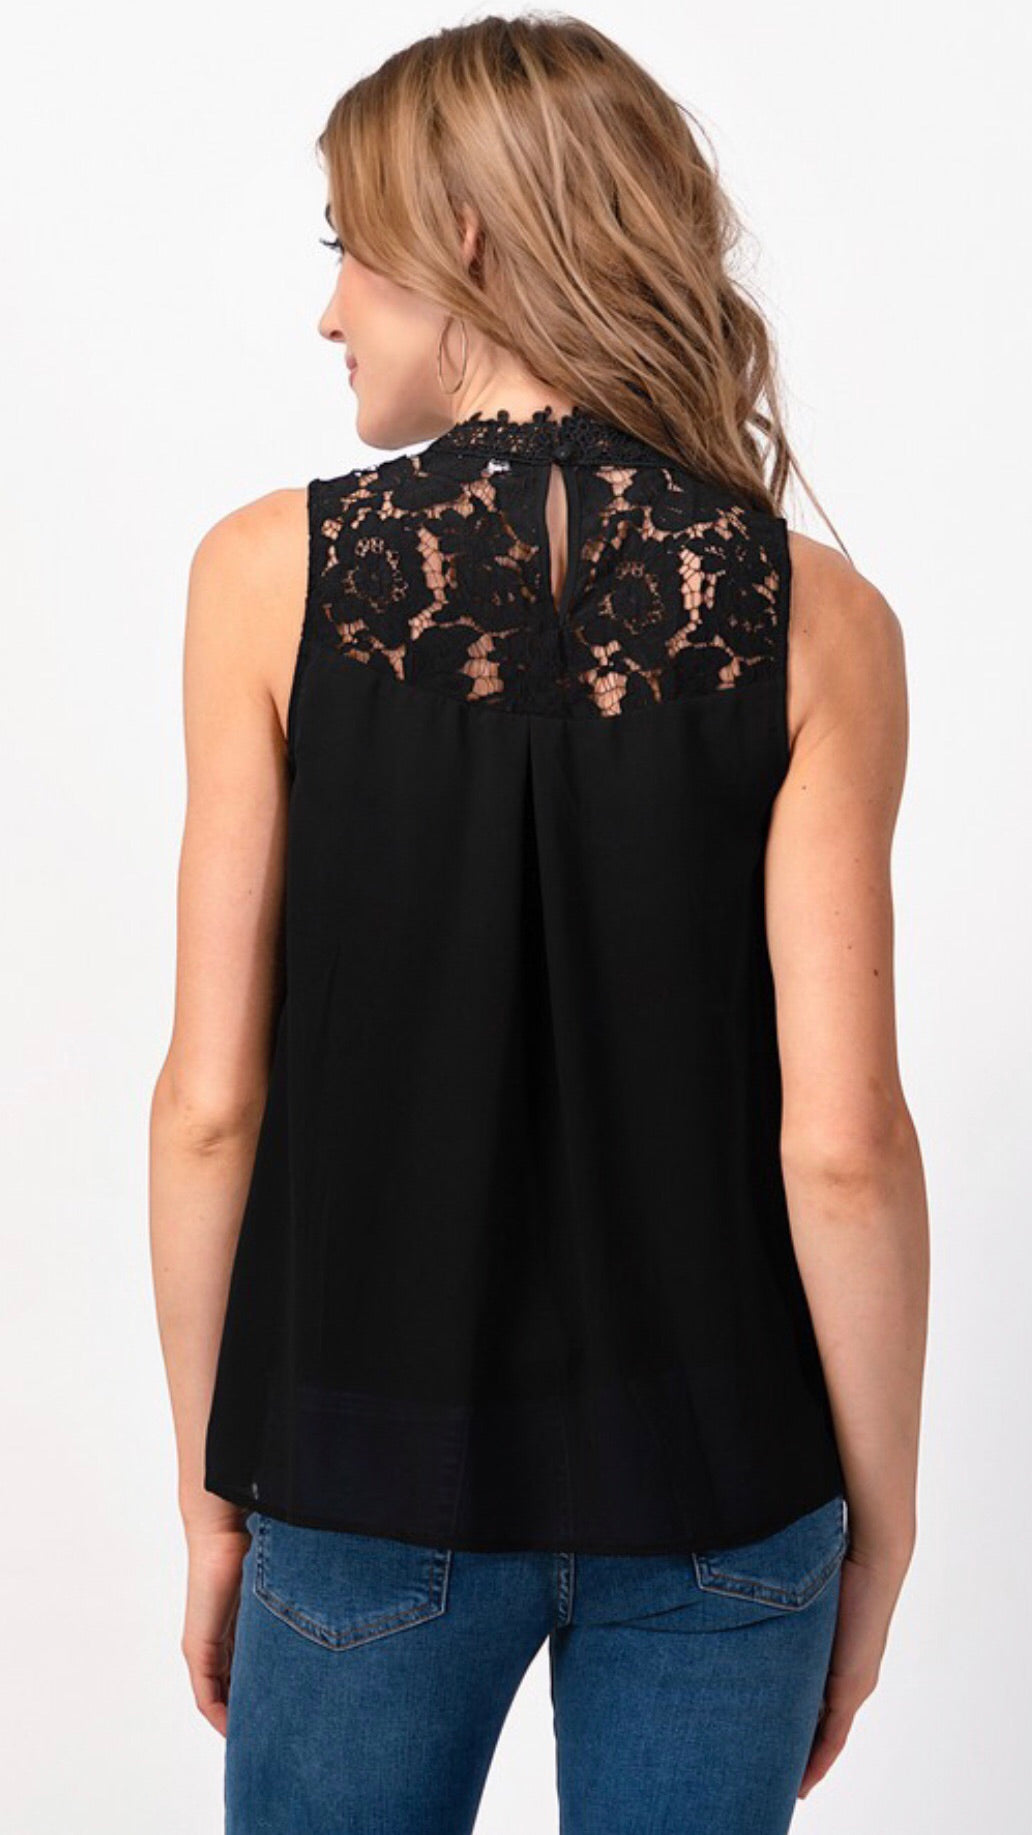 HIGH NECK ROMANTIC TOP WITH LACE - 2 COLORS